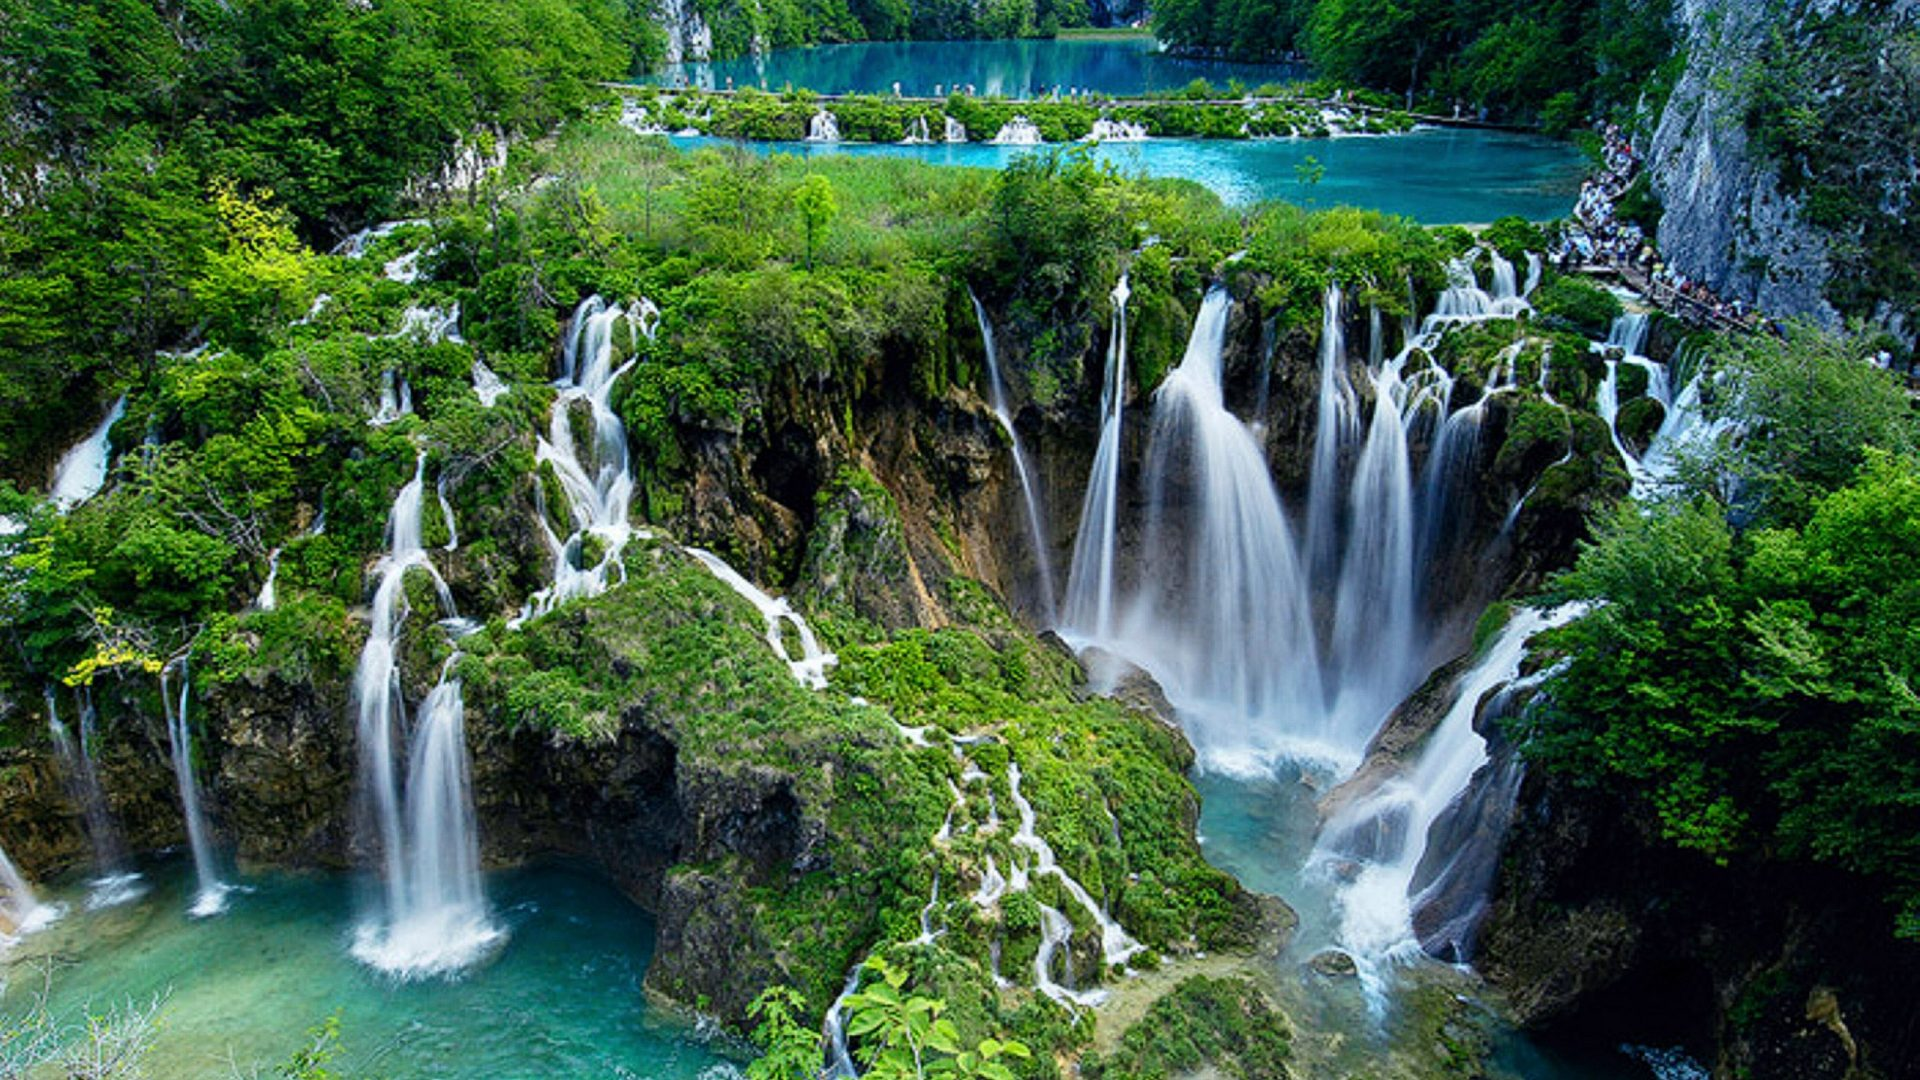 Plitvice Lakes National Park Croatia [1920X1080] wallpaper 1920x1080